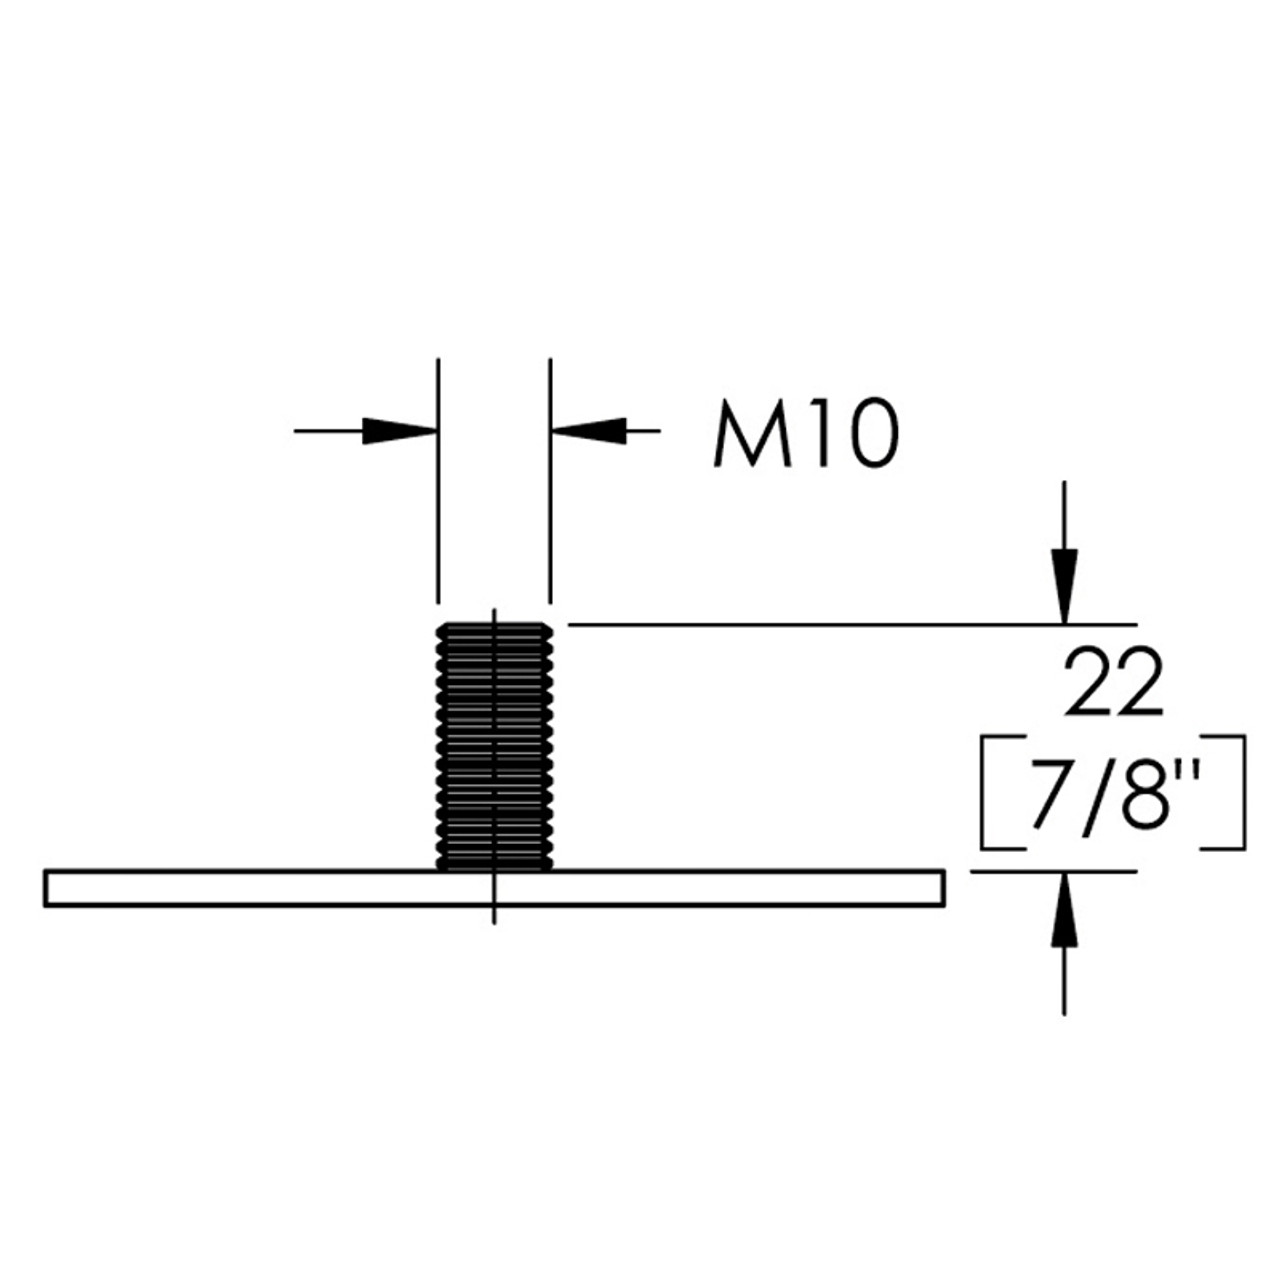 Diagram - Como Leg mounting bracket with M10 thread